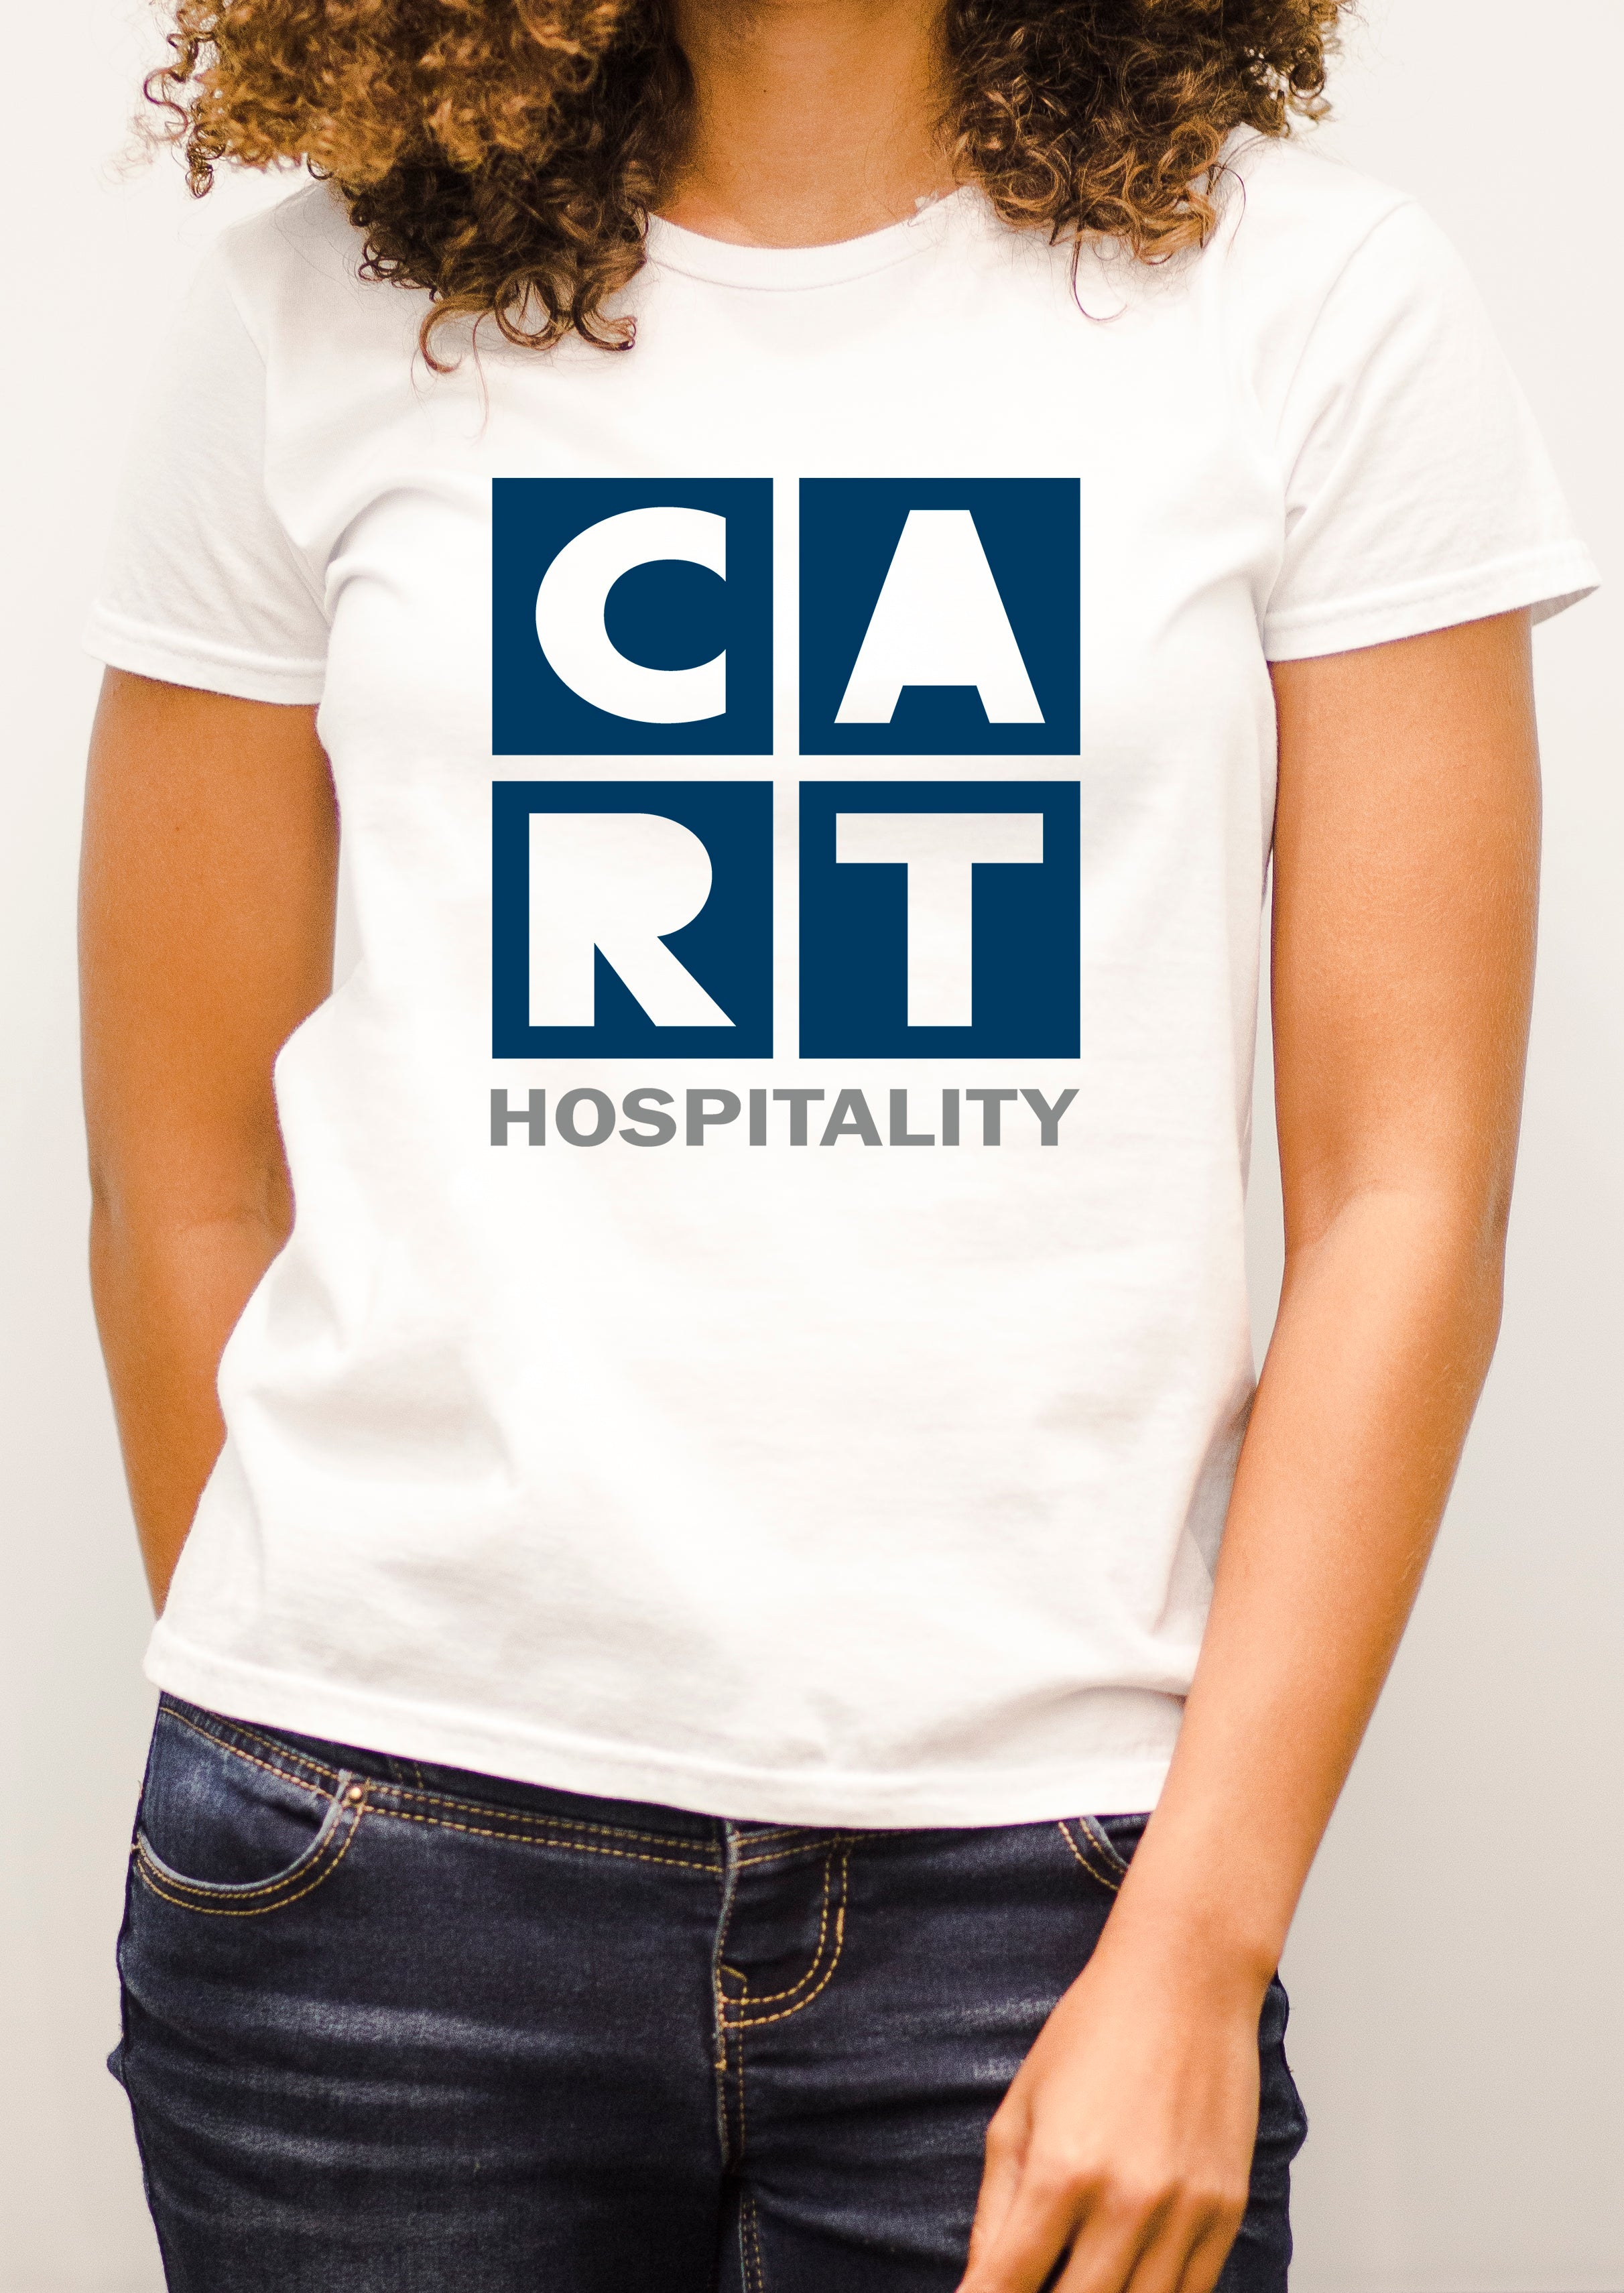 Women's short sleeve t-shirt - hospitality grey/blue-colored logo